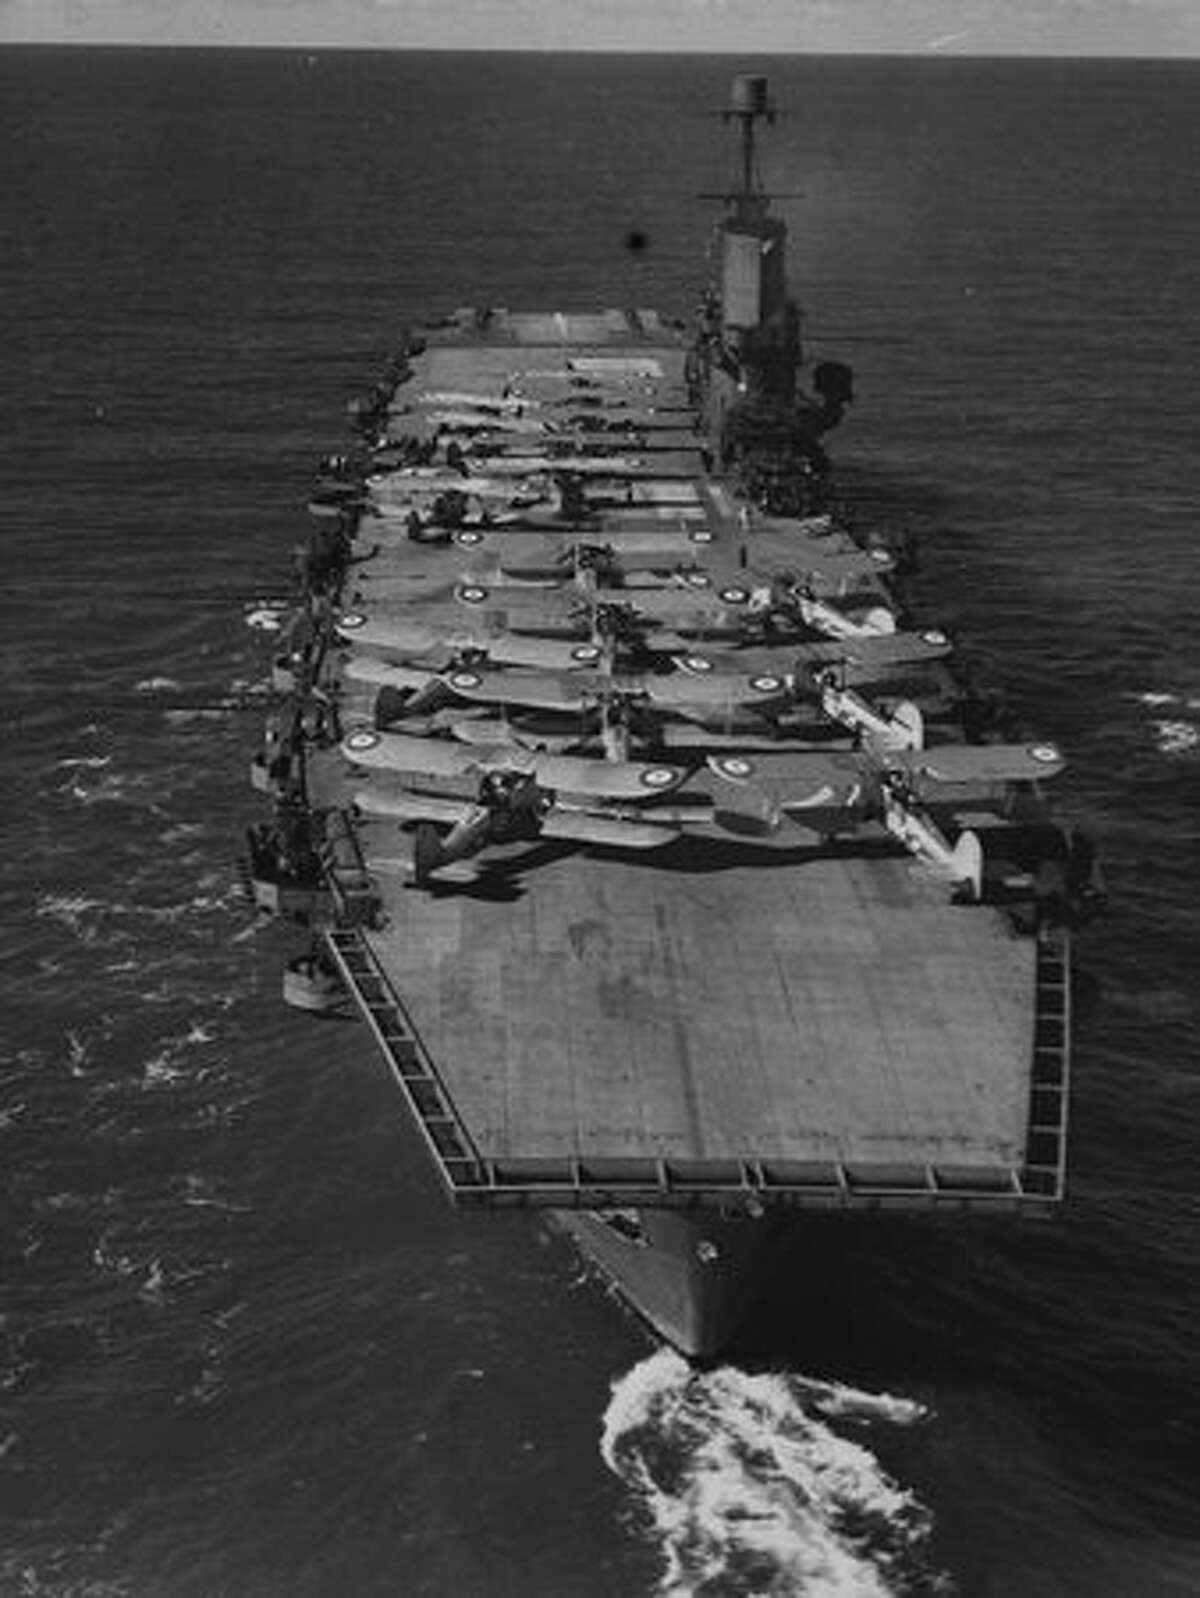 Airplanes prepare for take off from the flight deck of second HMS Ark Royal, circa 1935. (Charles E. Brown/Hulton Archive/Getty Images) Related story